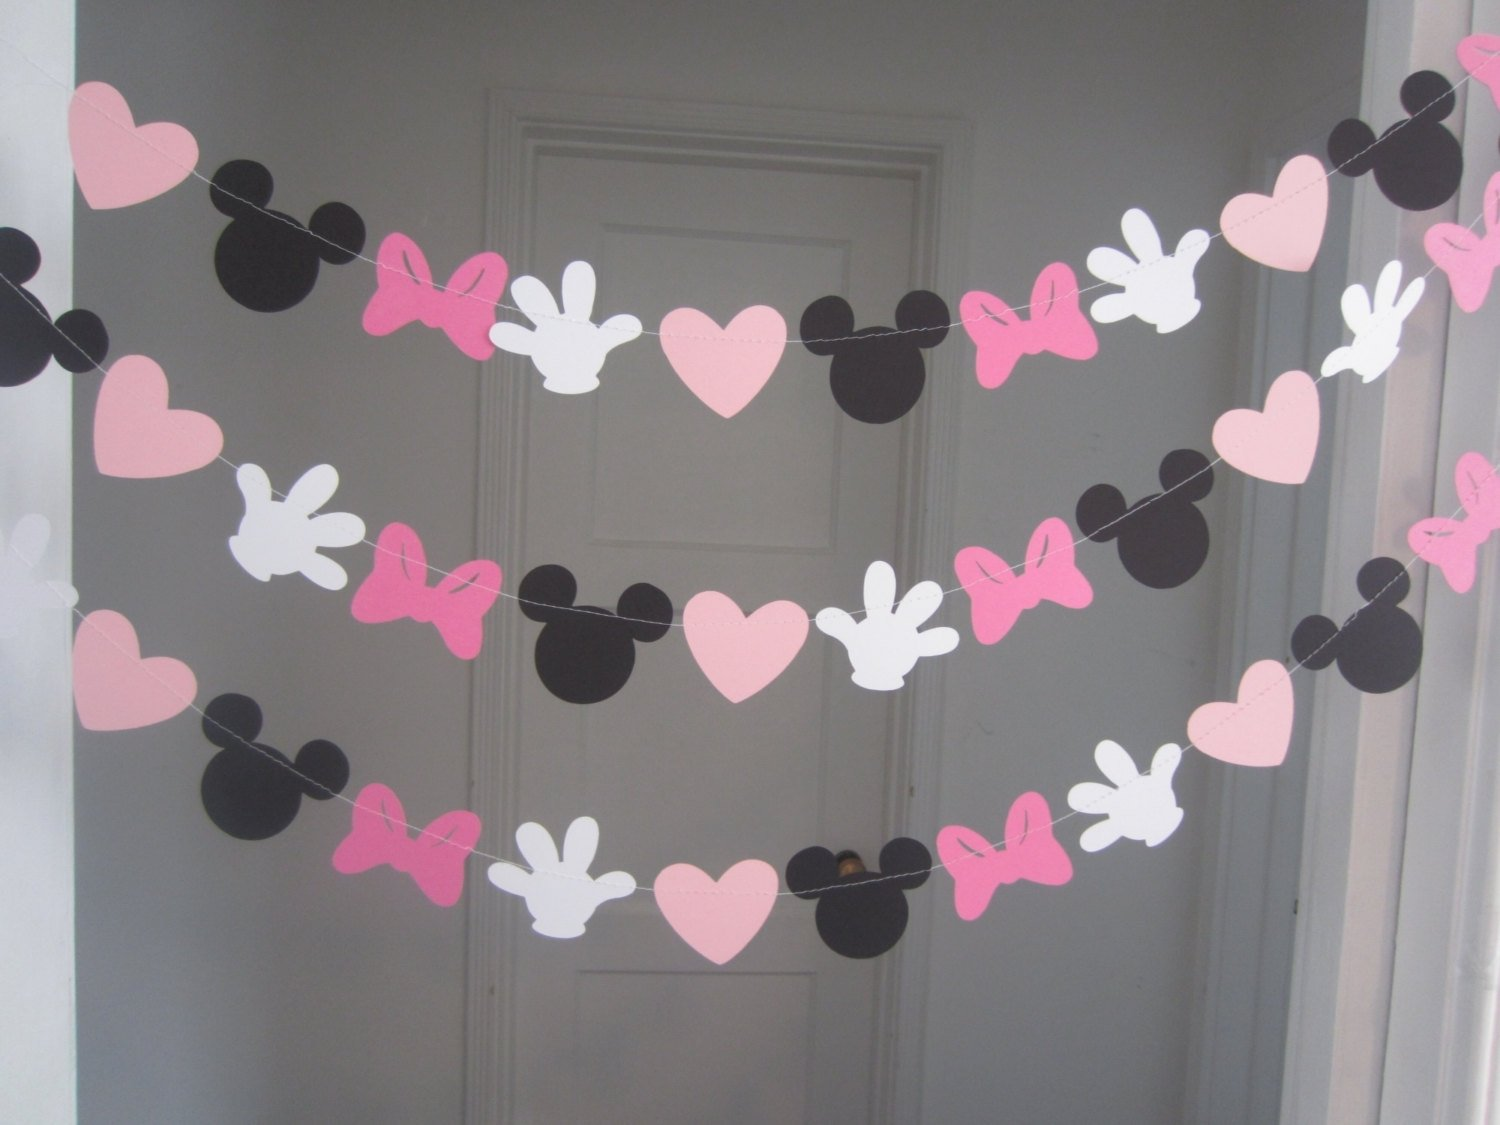 10 Ideal Minnie Mouse Party Ideas Pinterest 10 ft minnie mouse inspired paper garland banner decorations